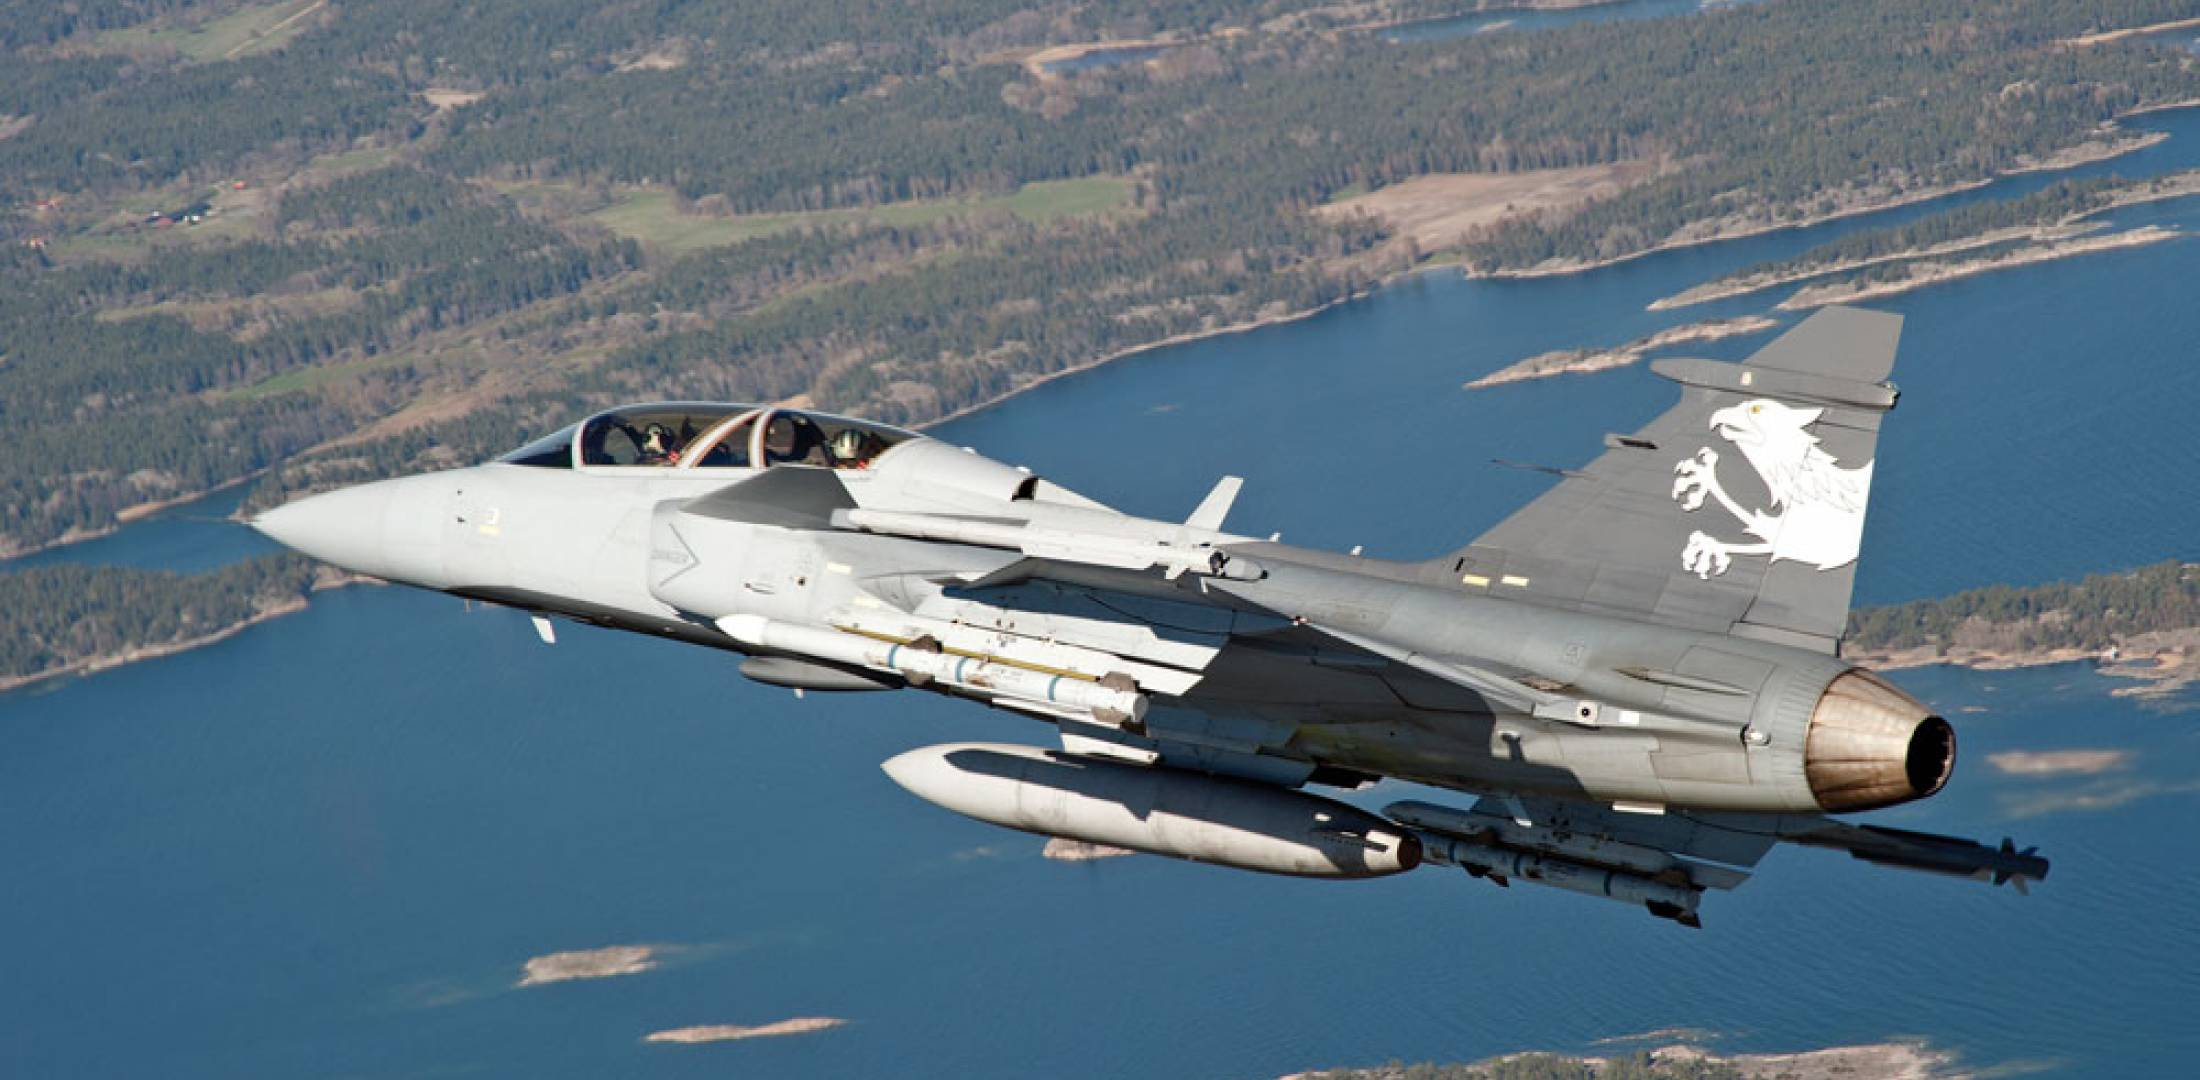 The Gripen E/F demonstrator in a test flight over Sweden last May, with a Swiss air force pilot onboard. In the competition among the three contending fighters, the Swiss chose the Swedish jet for its New Fighter Aircraft over its larger European rivals, the Eurofighter and the Rafale.